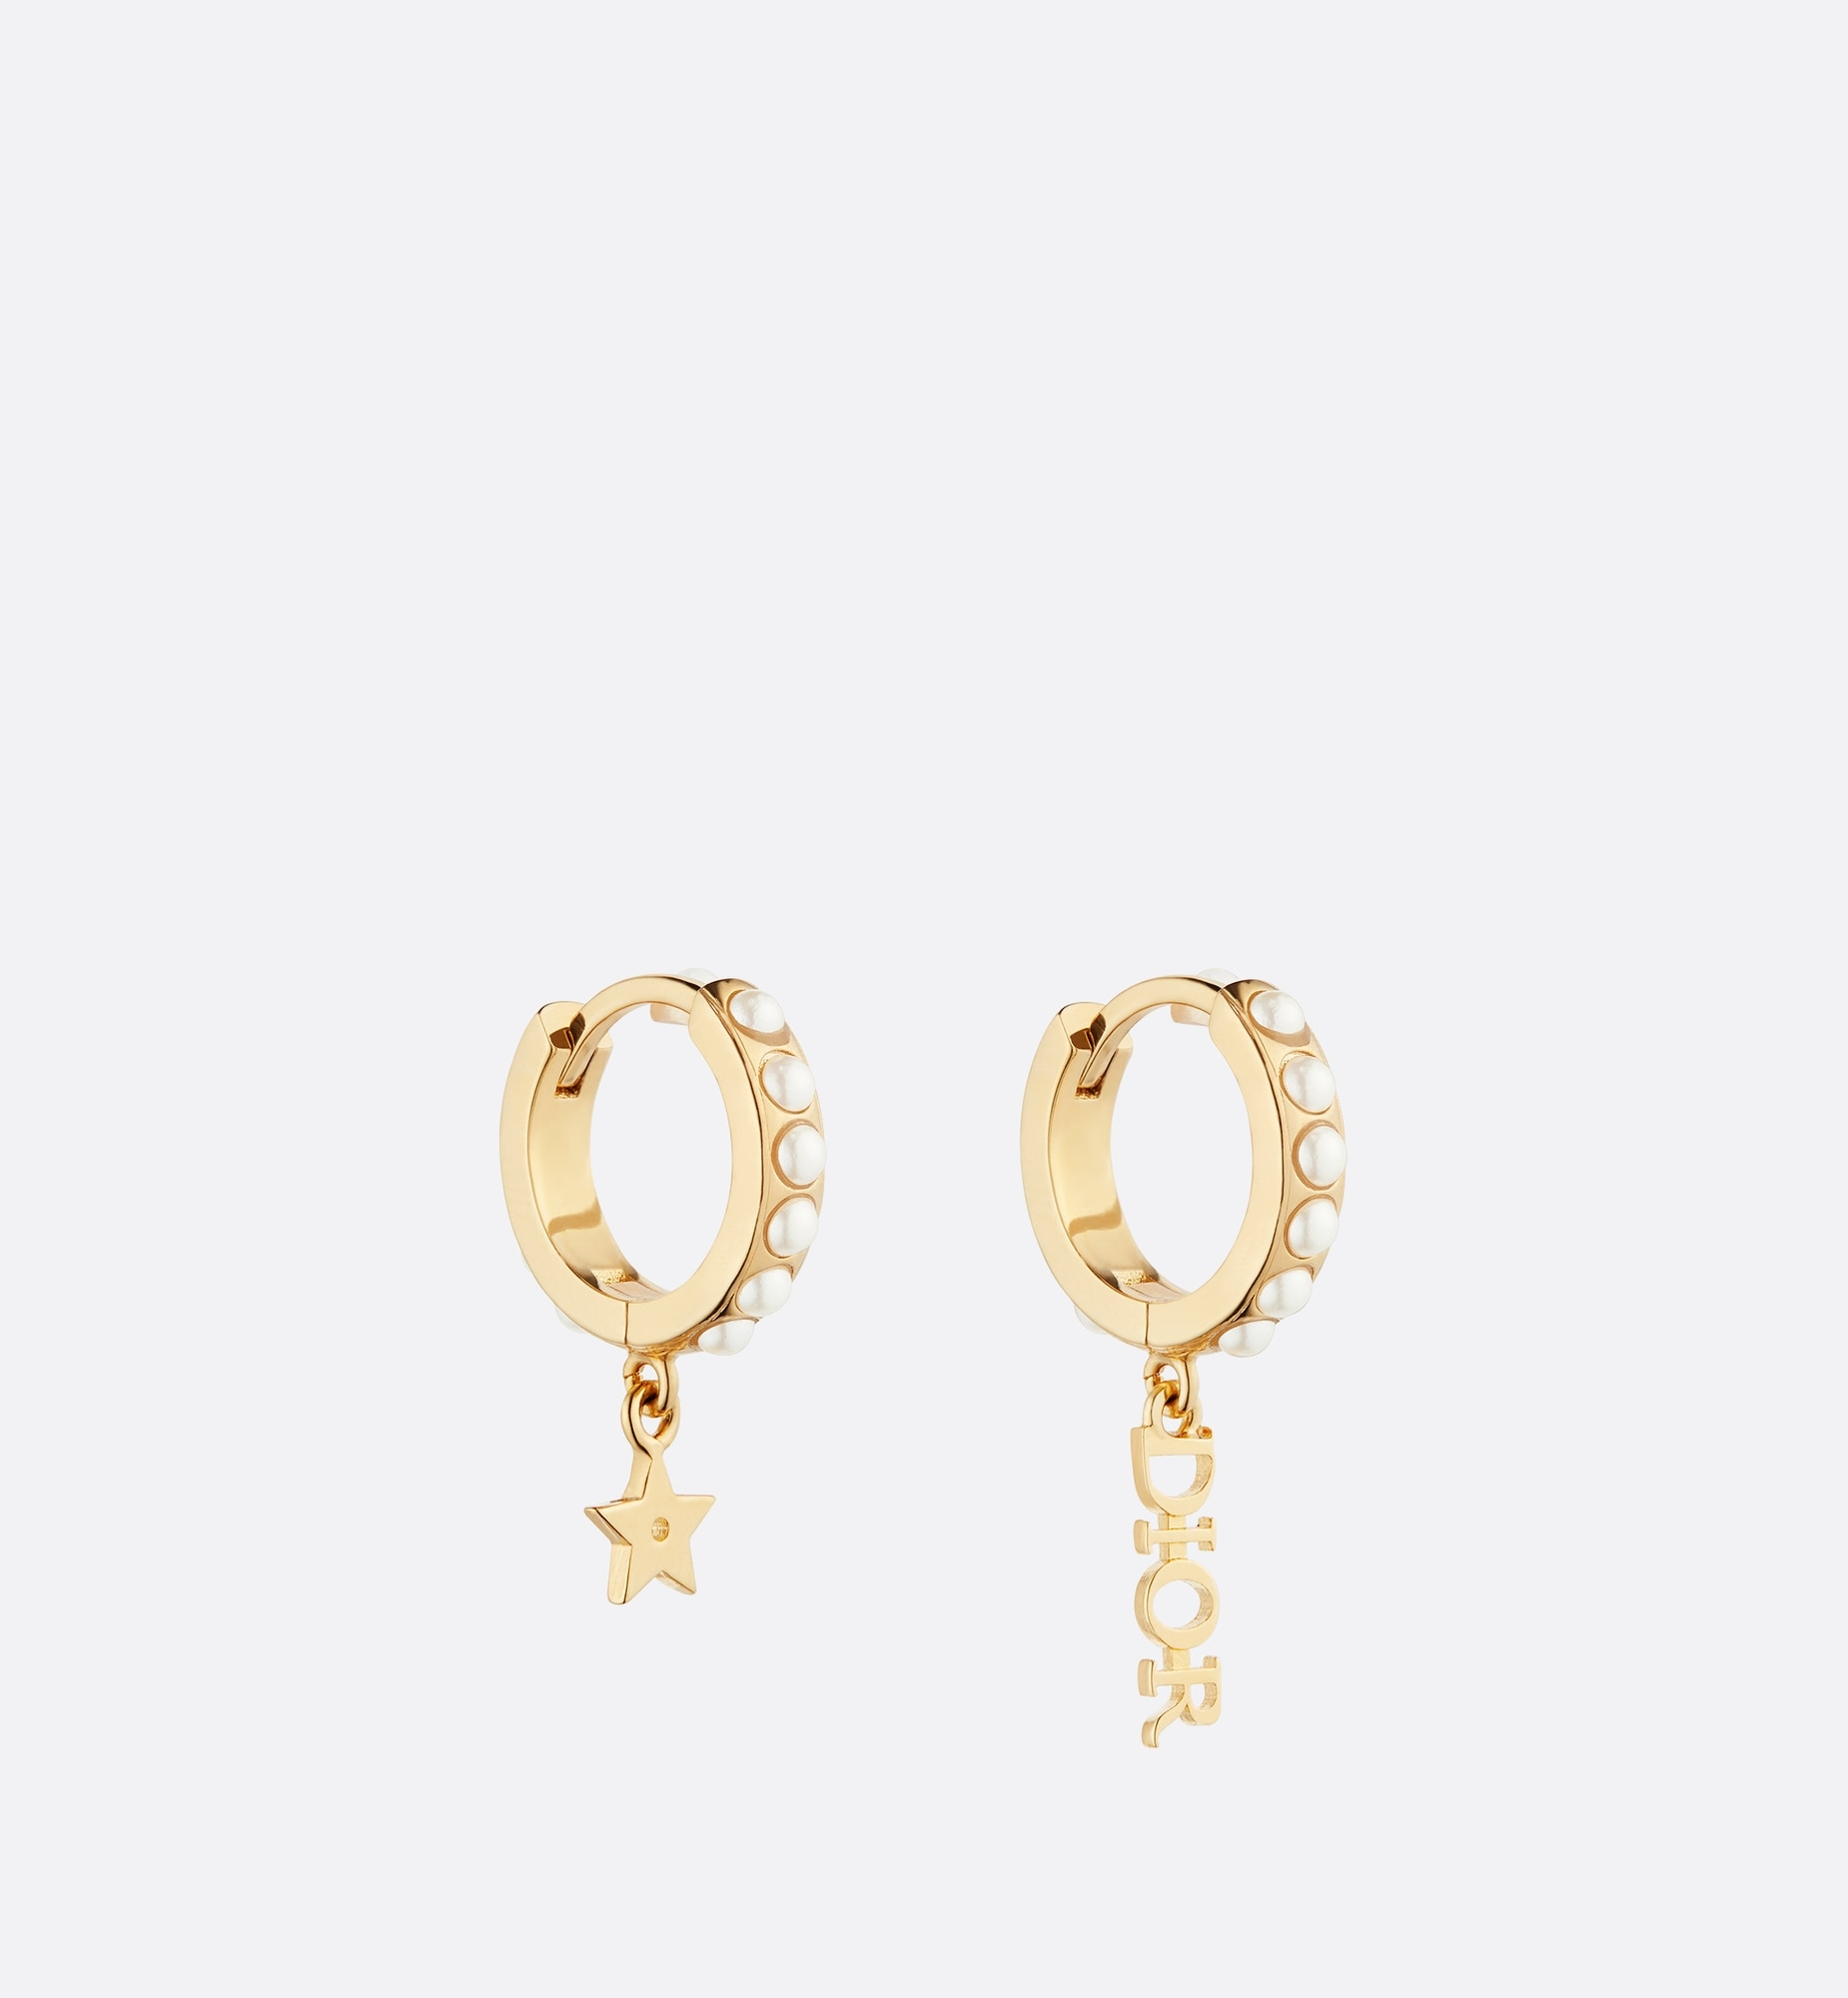 dio(r)evolution earrings | Dior Three quarter closed view